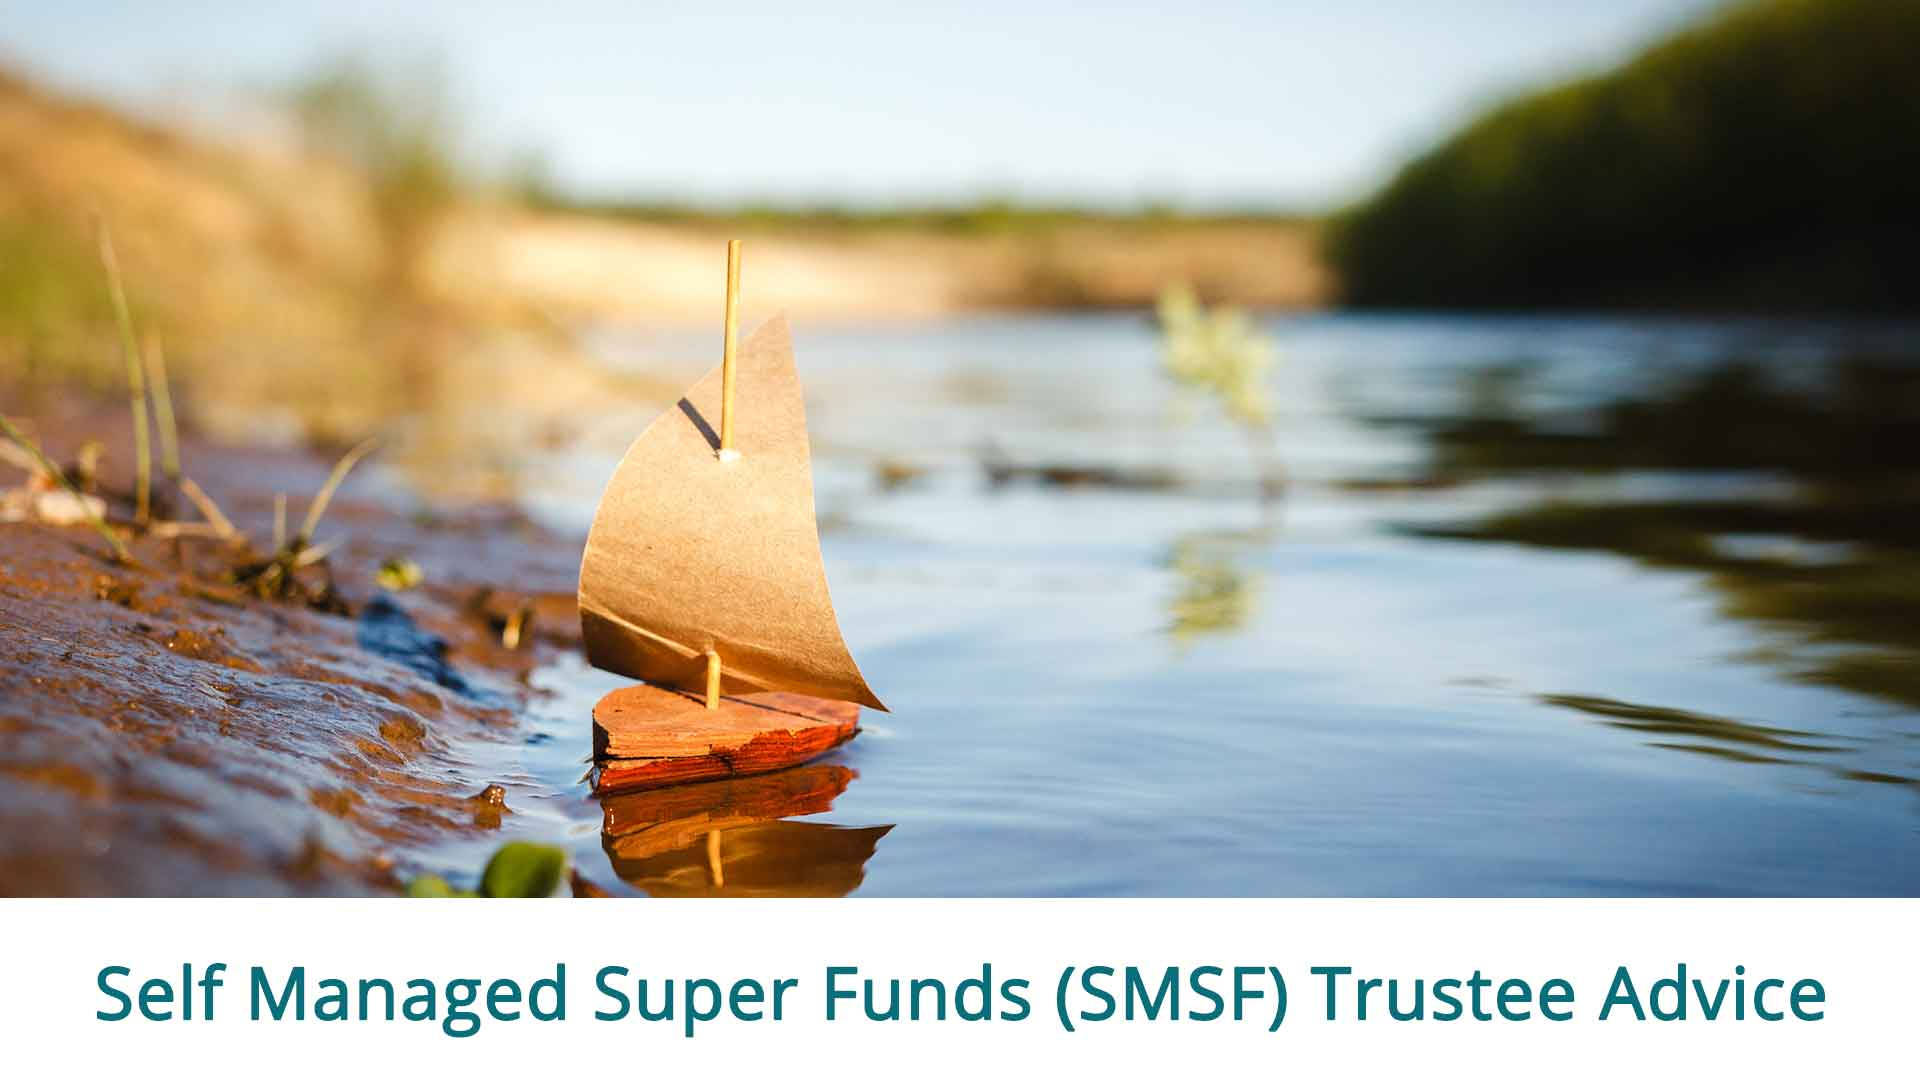 Murray-Mallee-Financial-Planning-Advice-5-Self-Managed-Super-Funds-(SMSF)-Trustee-Advice